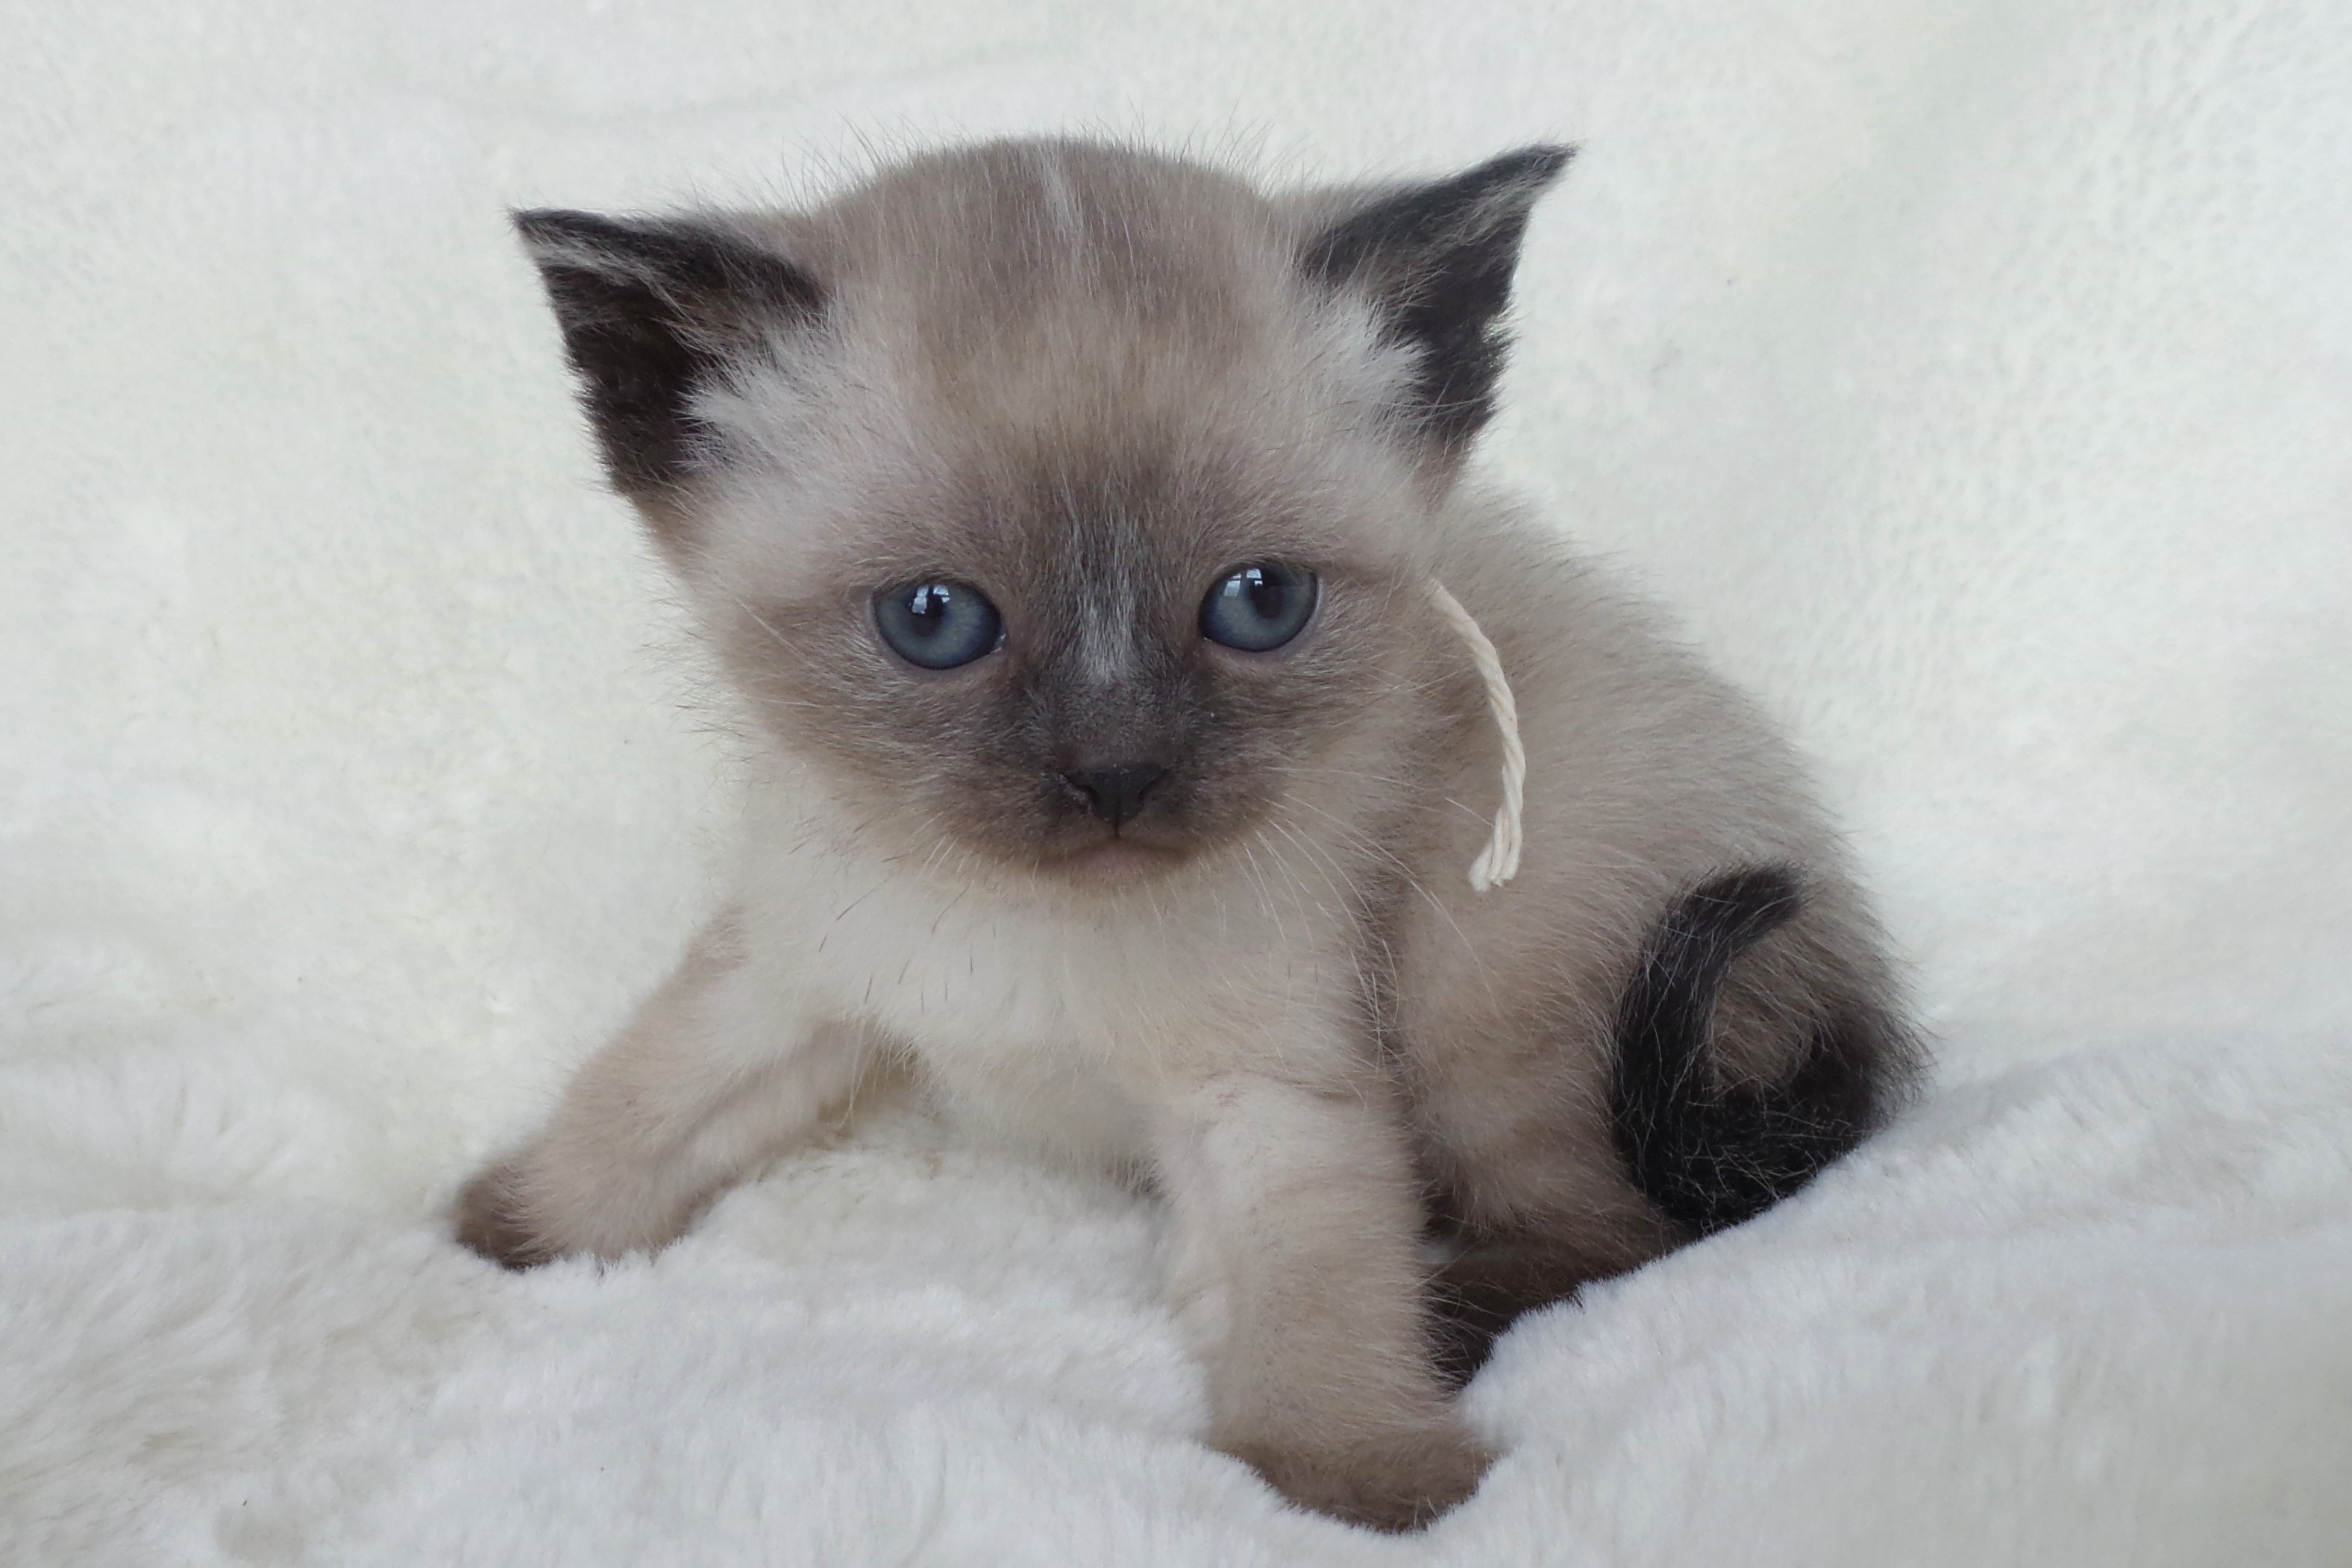 cute kittens images siamese kittens hd wallpaper and background